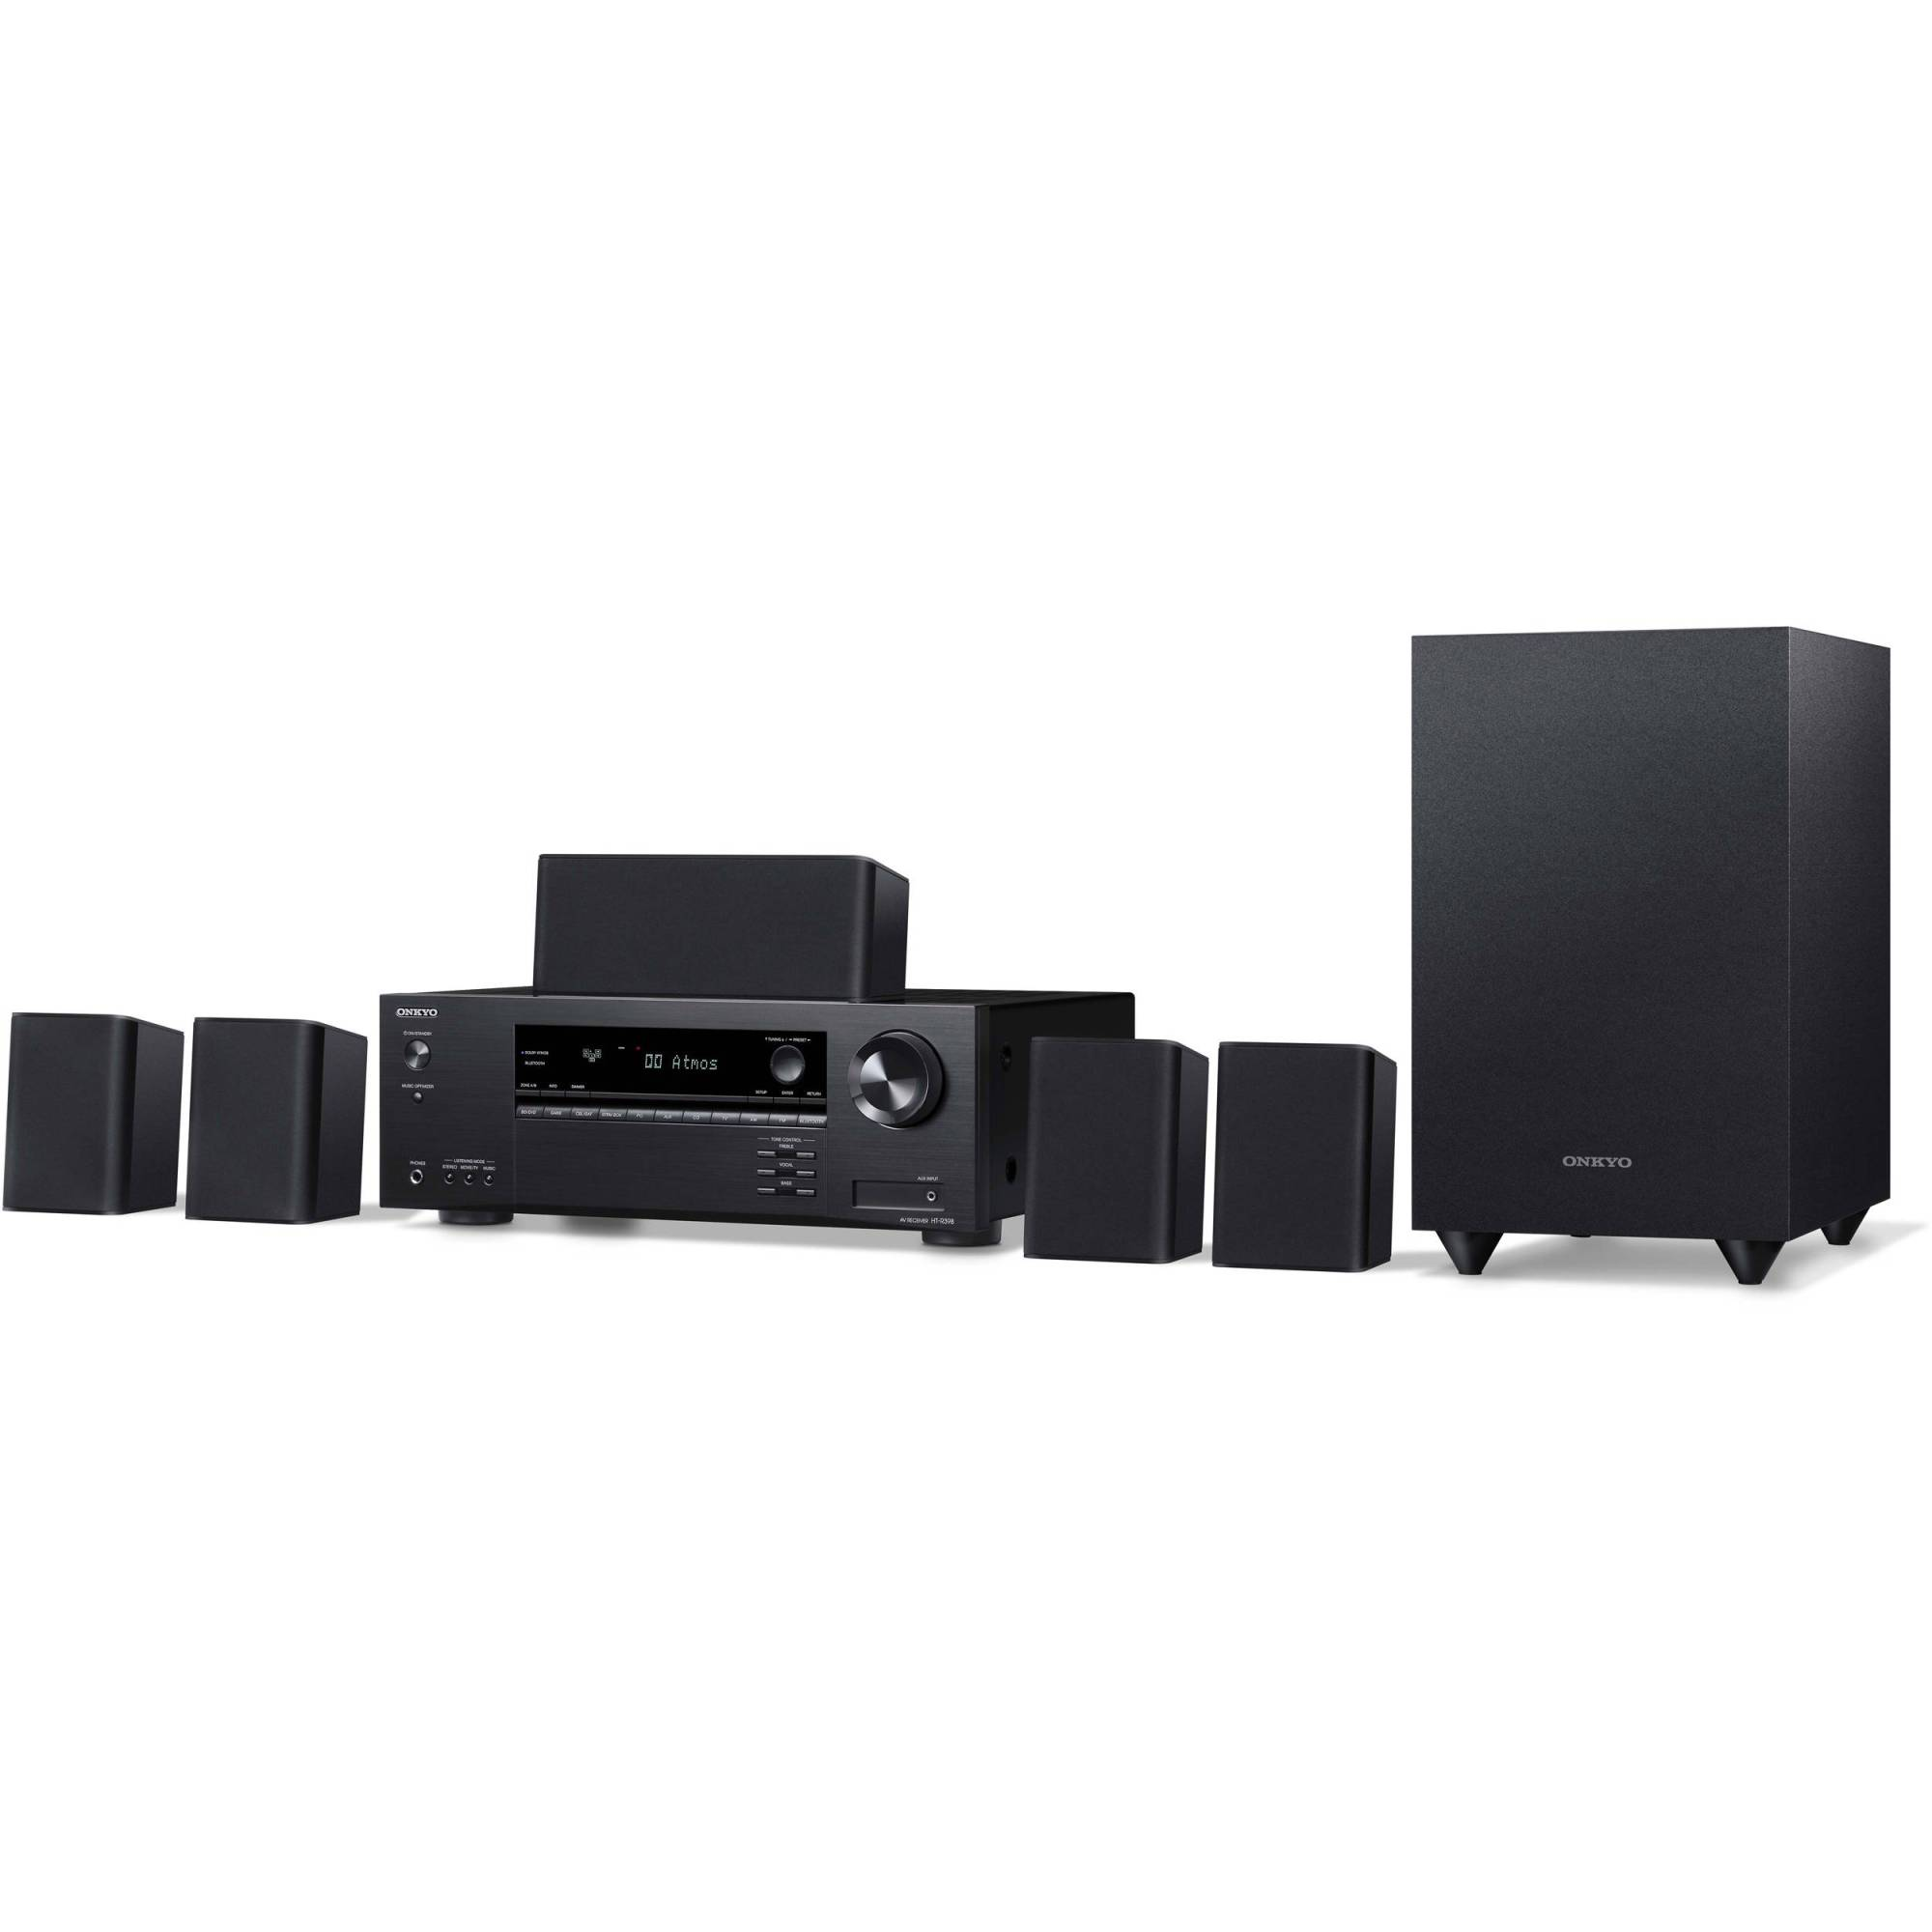 hight resolution of onkyo ht s3910 5 1 channel home theater system